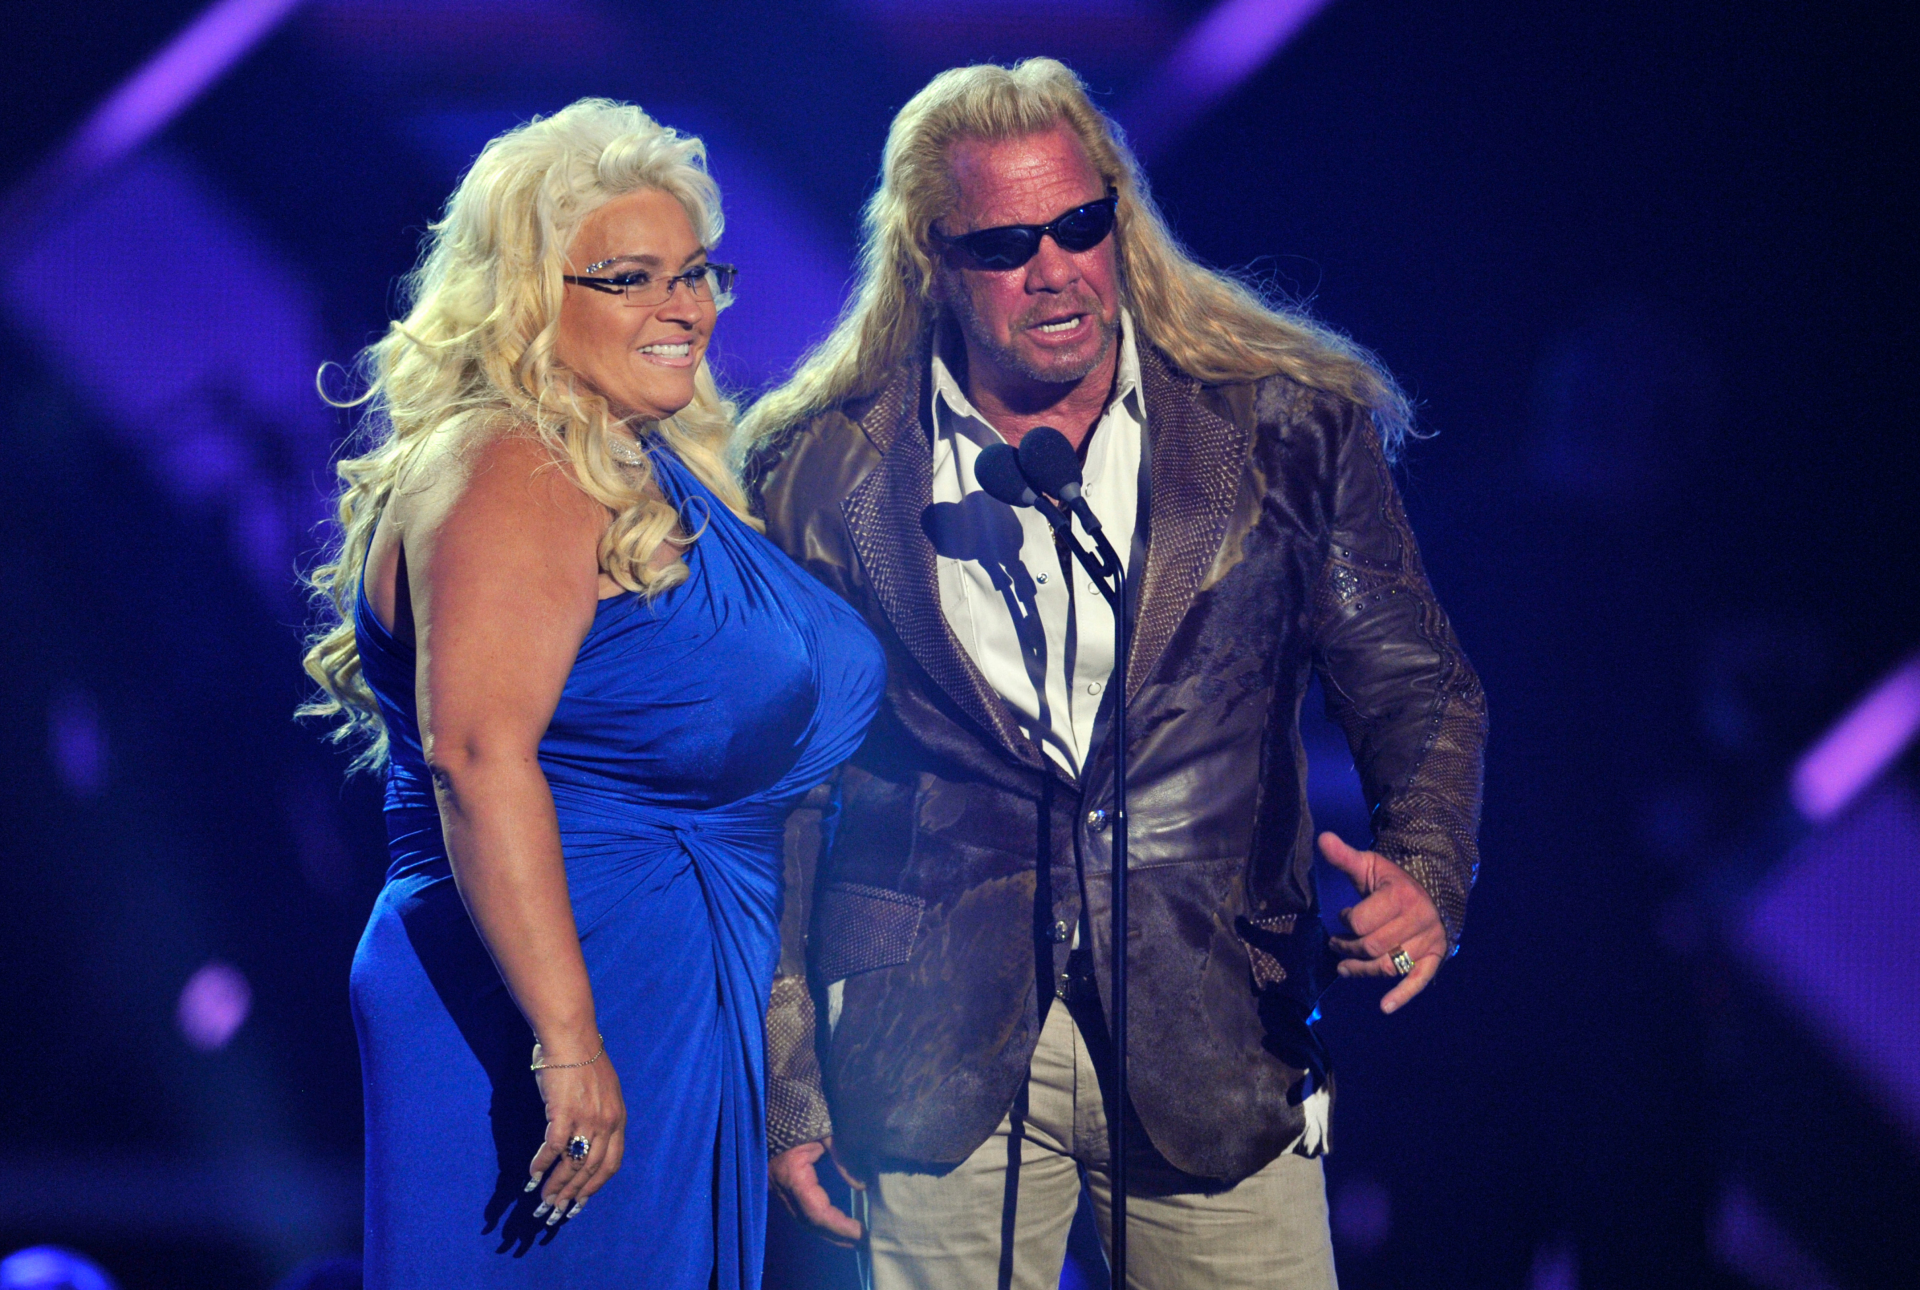 Westlake Legal Group ContentBroker_contentid-275a21639efd44d69c17d5097cf1665a 'Dog the Bounty Hunter' star Beth Chapman honored in Hawaii memorial service Jessica Sager fox-news/person/duane-chapman fox-news/entertainment/genres/reality fox-news/entertainment/events/departed fox-news/entertainment/celebrity-news fox-news/entertainment fox news fnc/entertainment fnc ed6d4cd1-d1cd-5619-accf-98987983ba17 article